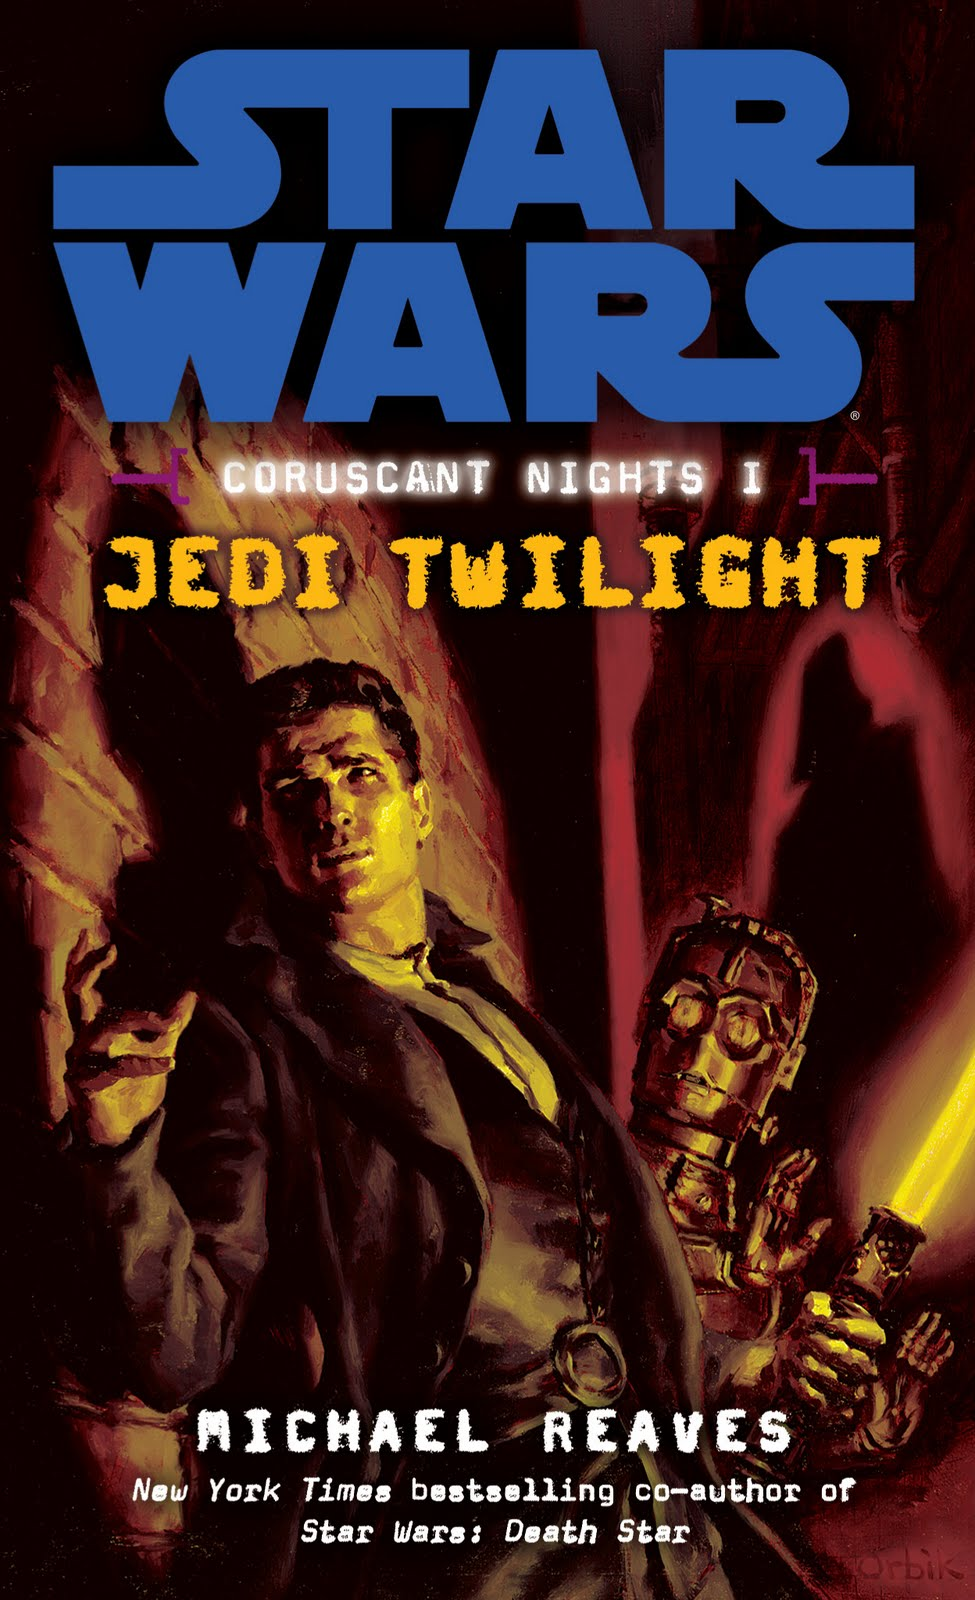 Star Wars Coruscant Nights: Jedi Twilight